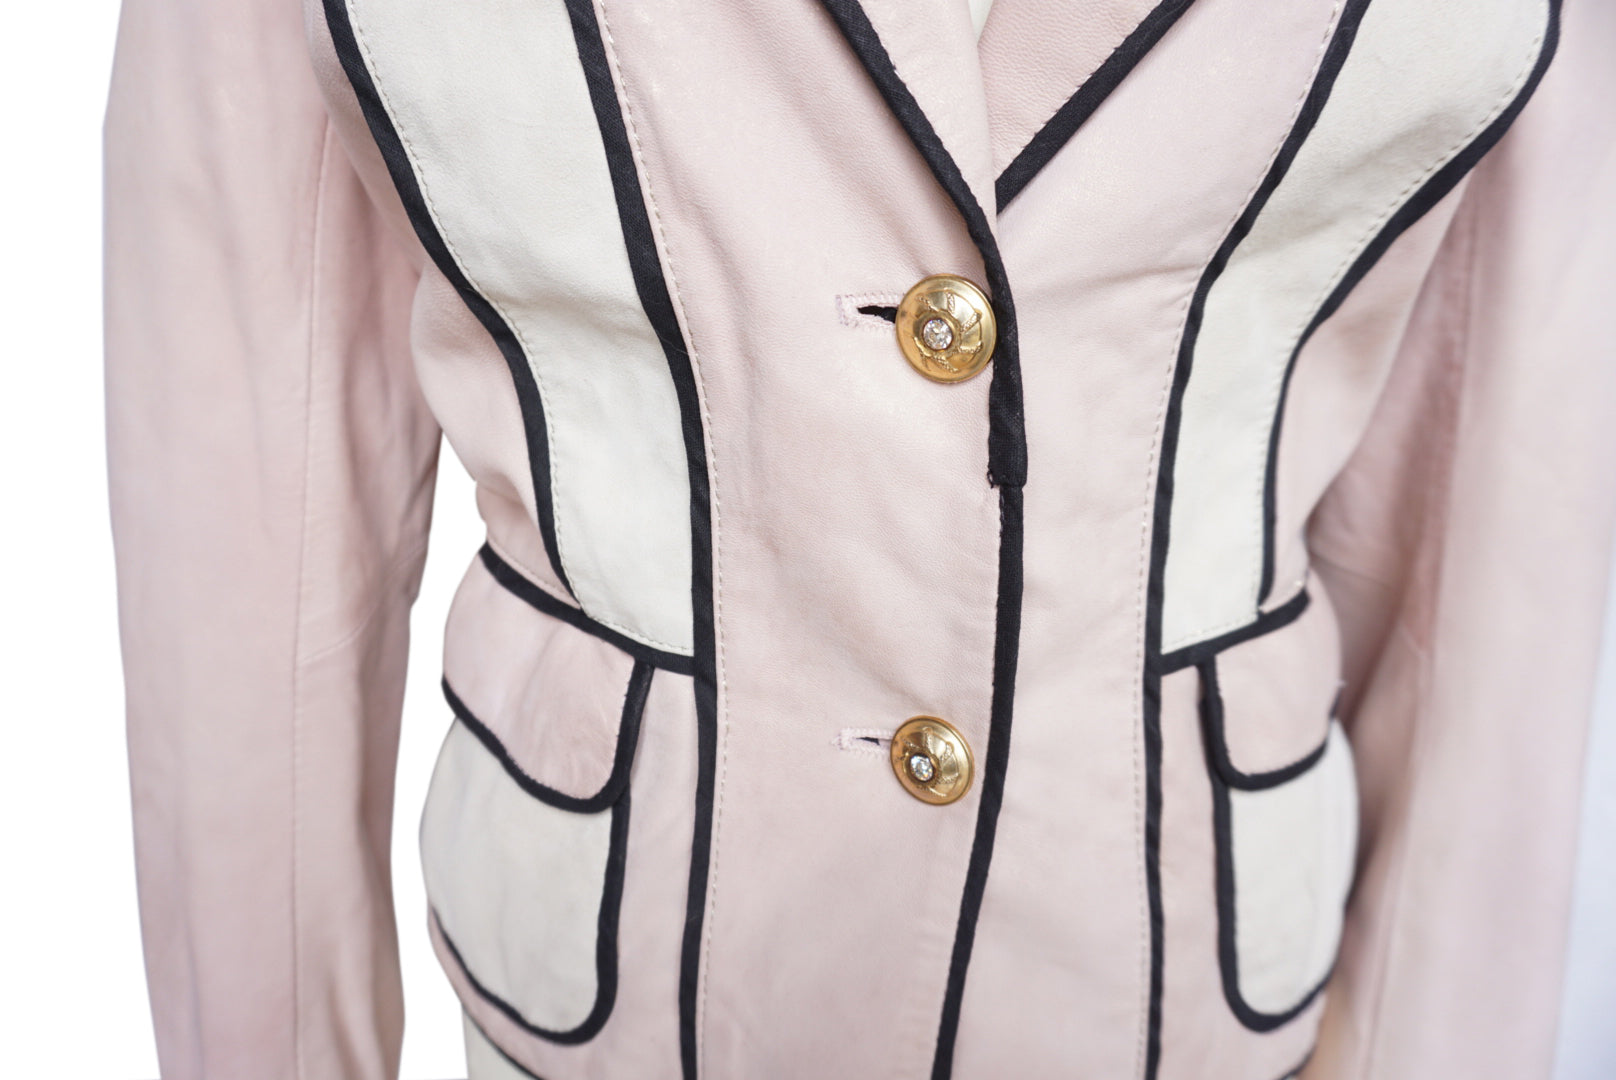 Roberto Cavalli Pink Leather Jacket with Lace Up in the Back and Golden Details Size 42 (EU)